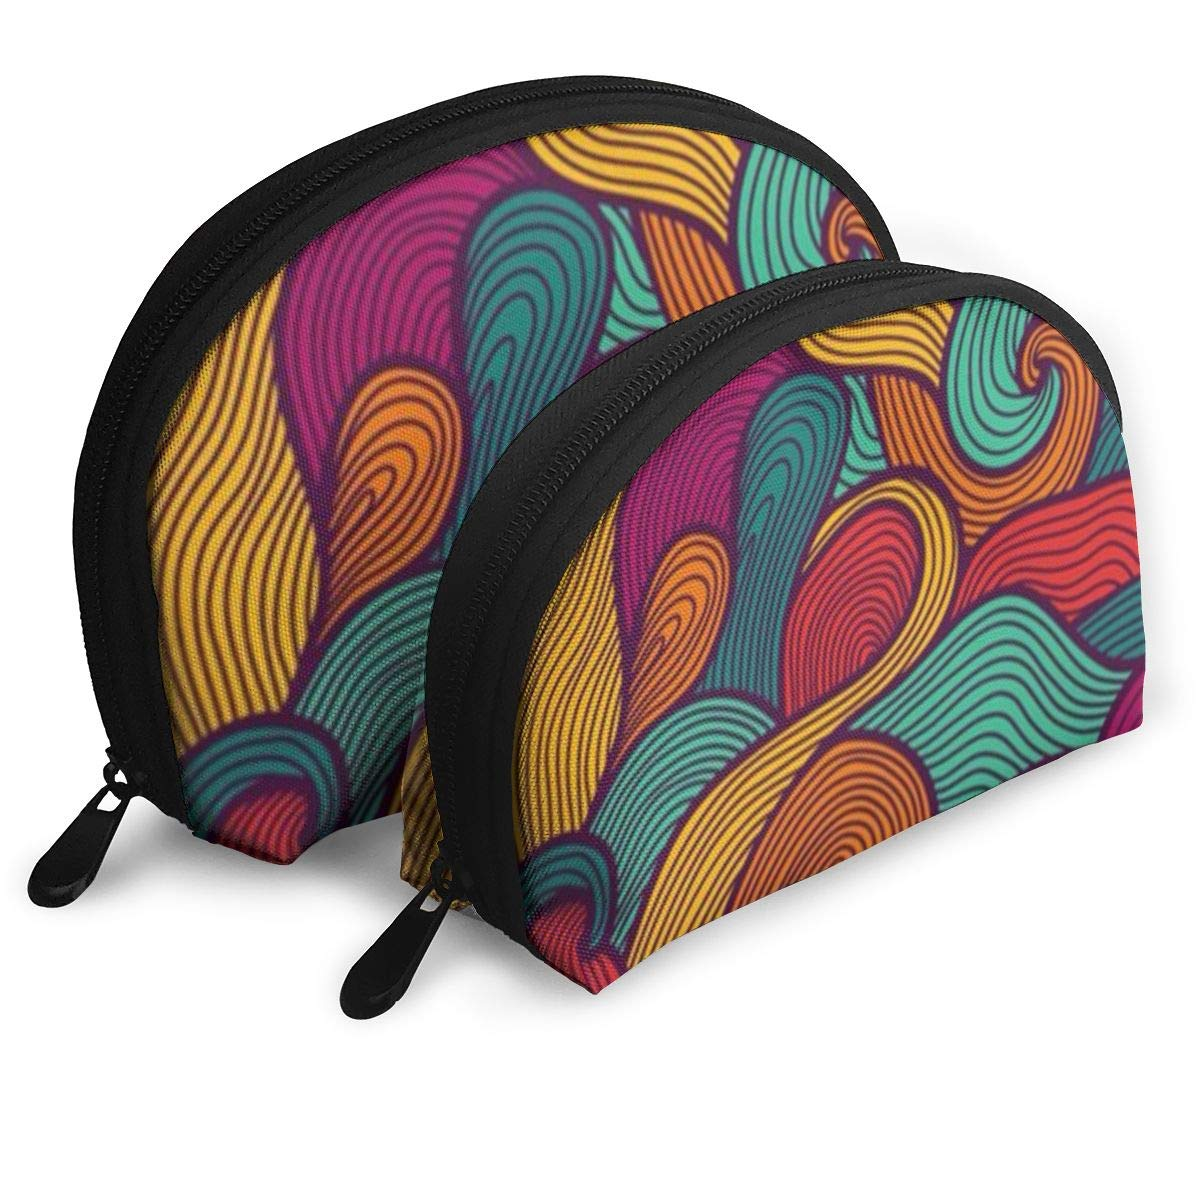 Half Moon Cosmetic Beauty Bag,Hipster Colorful Patterned Handy Cosmetic Pouch Clutch Makeup Bag For Women Girls